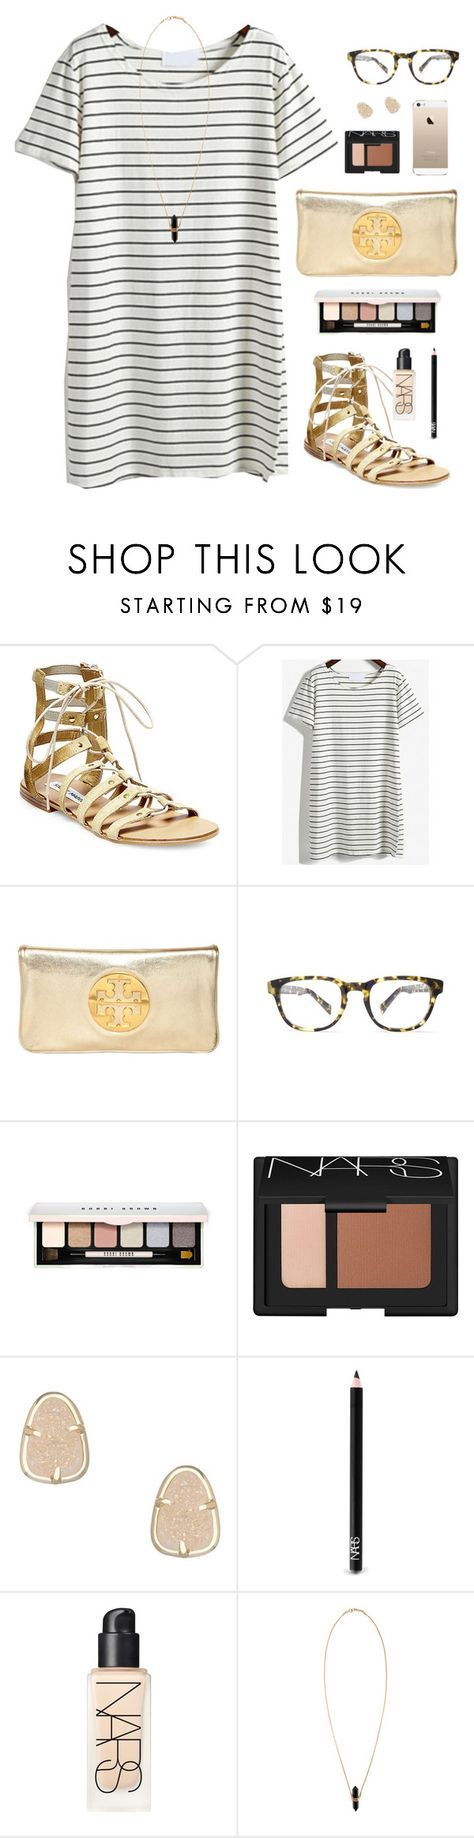 """sry I've been busy this week!!"" by classically-preppy ❤ liked on Polyvore featuring Steve Madden, Tory Burch, Warby Parker, Bobbi Brown Cosmetics, NARS Cosmetics, Kendra Scott and Isabel Marant"